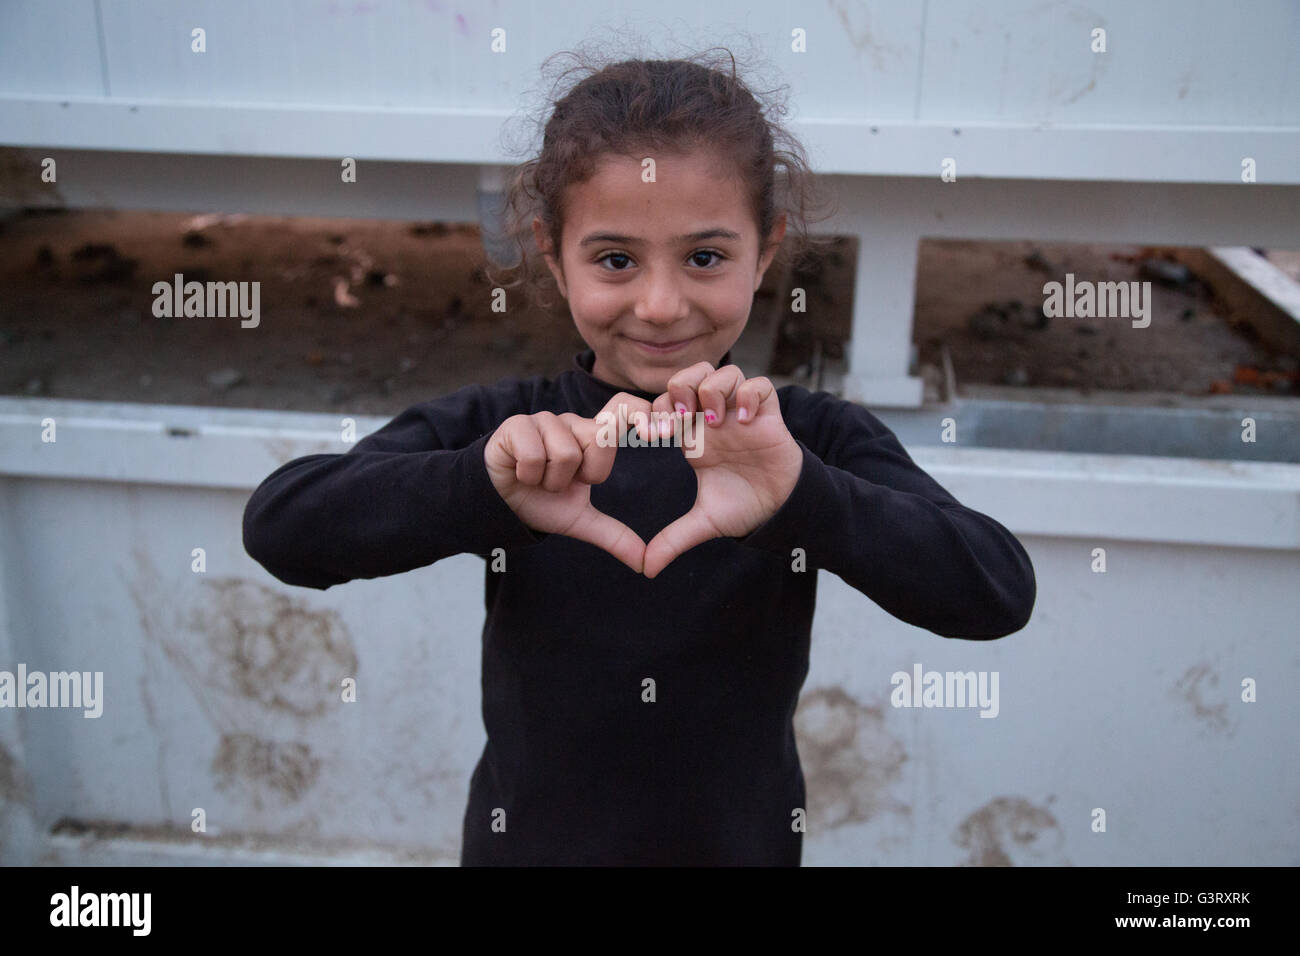 Young Syrian girl in the Idomeni refugee camp makes the shape of a heart with her hands. - Stock Image